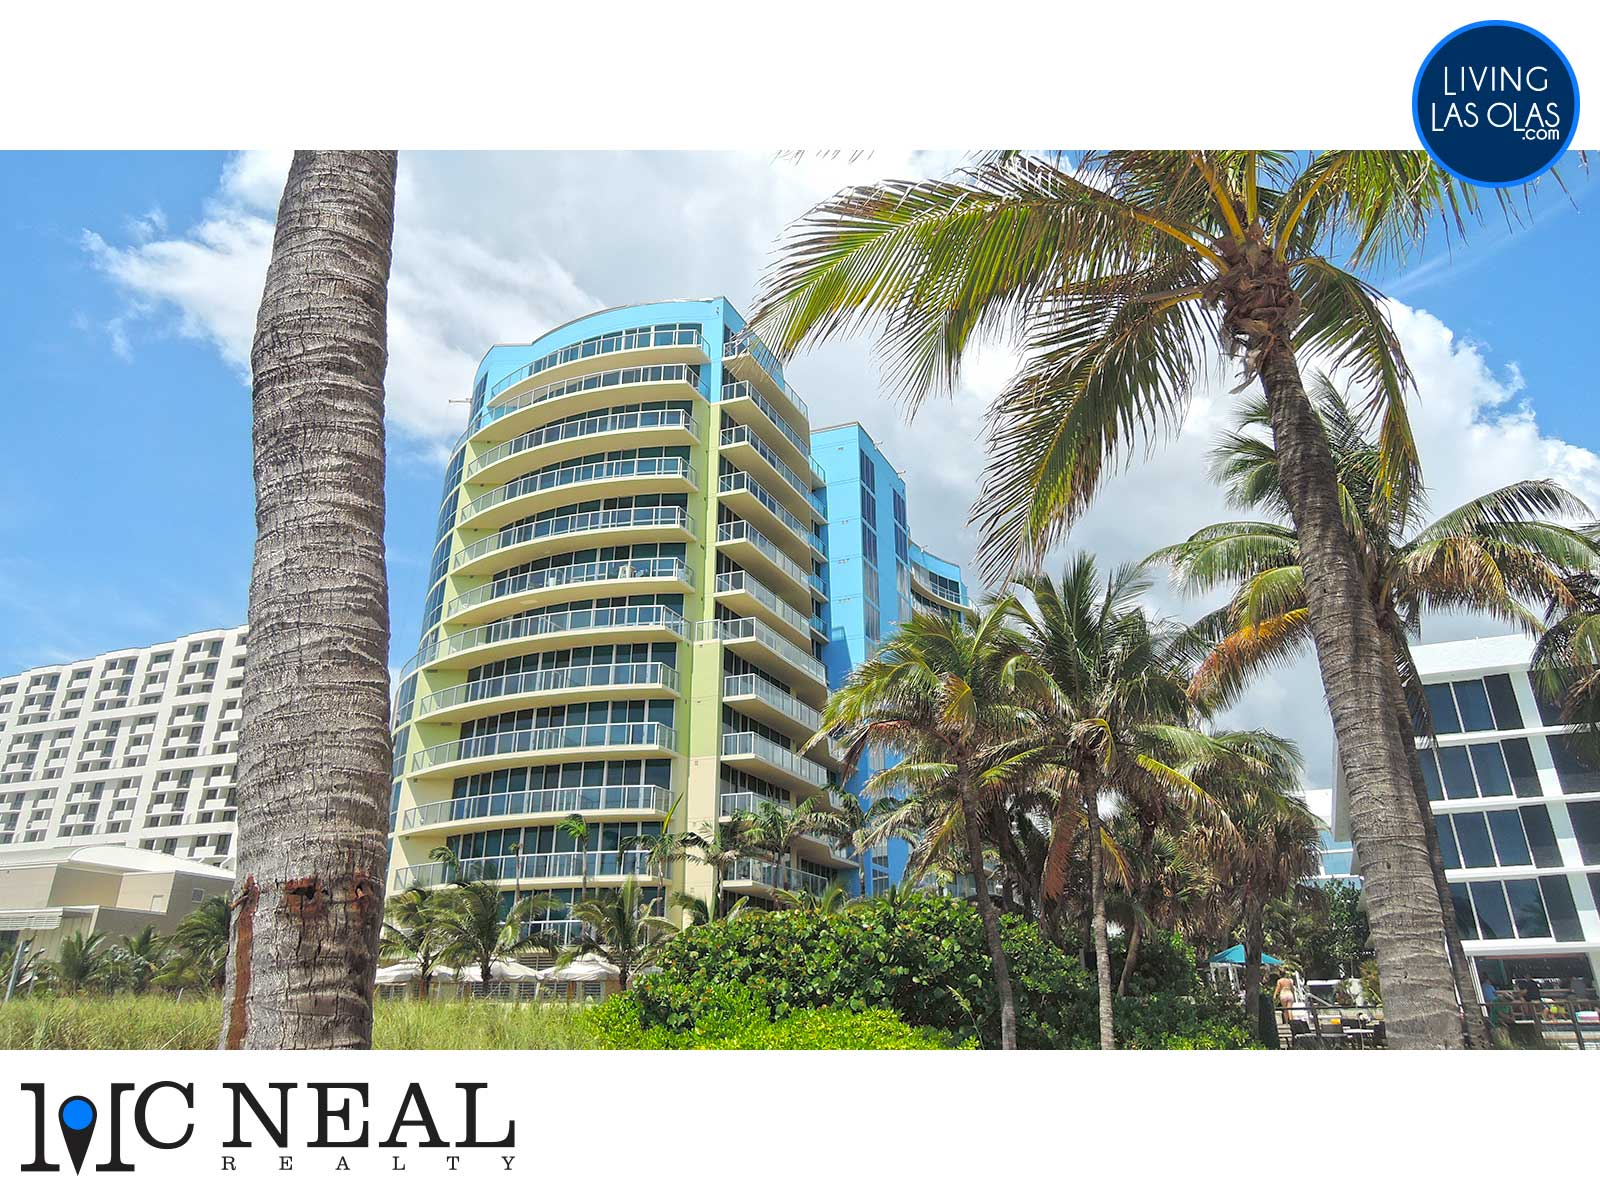 Coconut Grove Residences Fort Lauderdale Condos Images 04